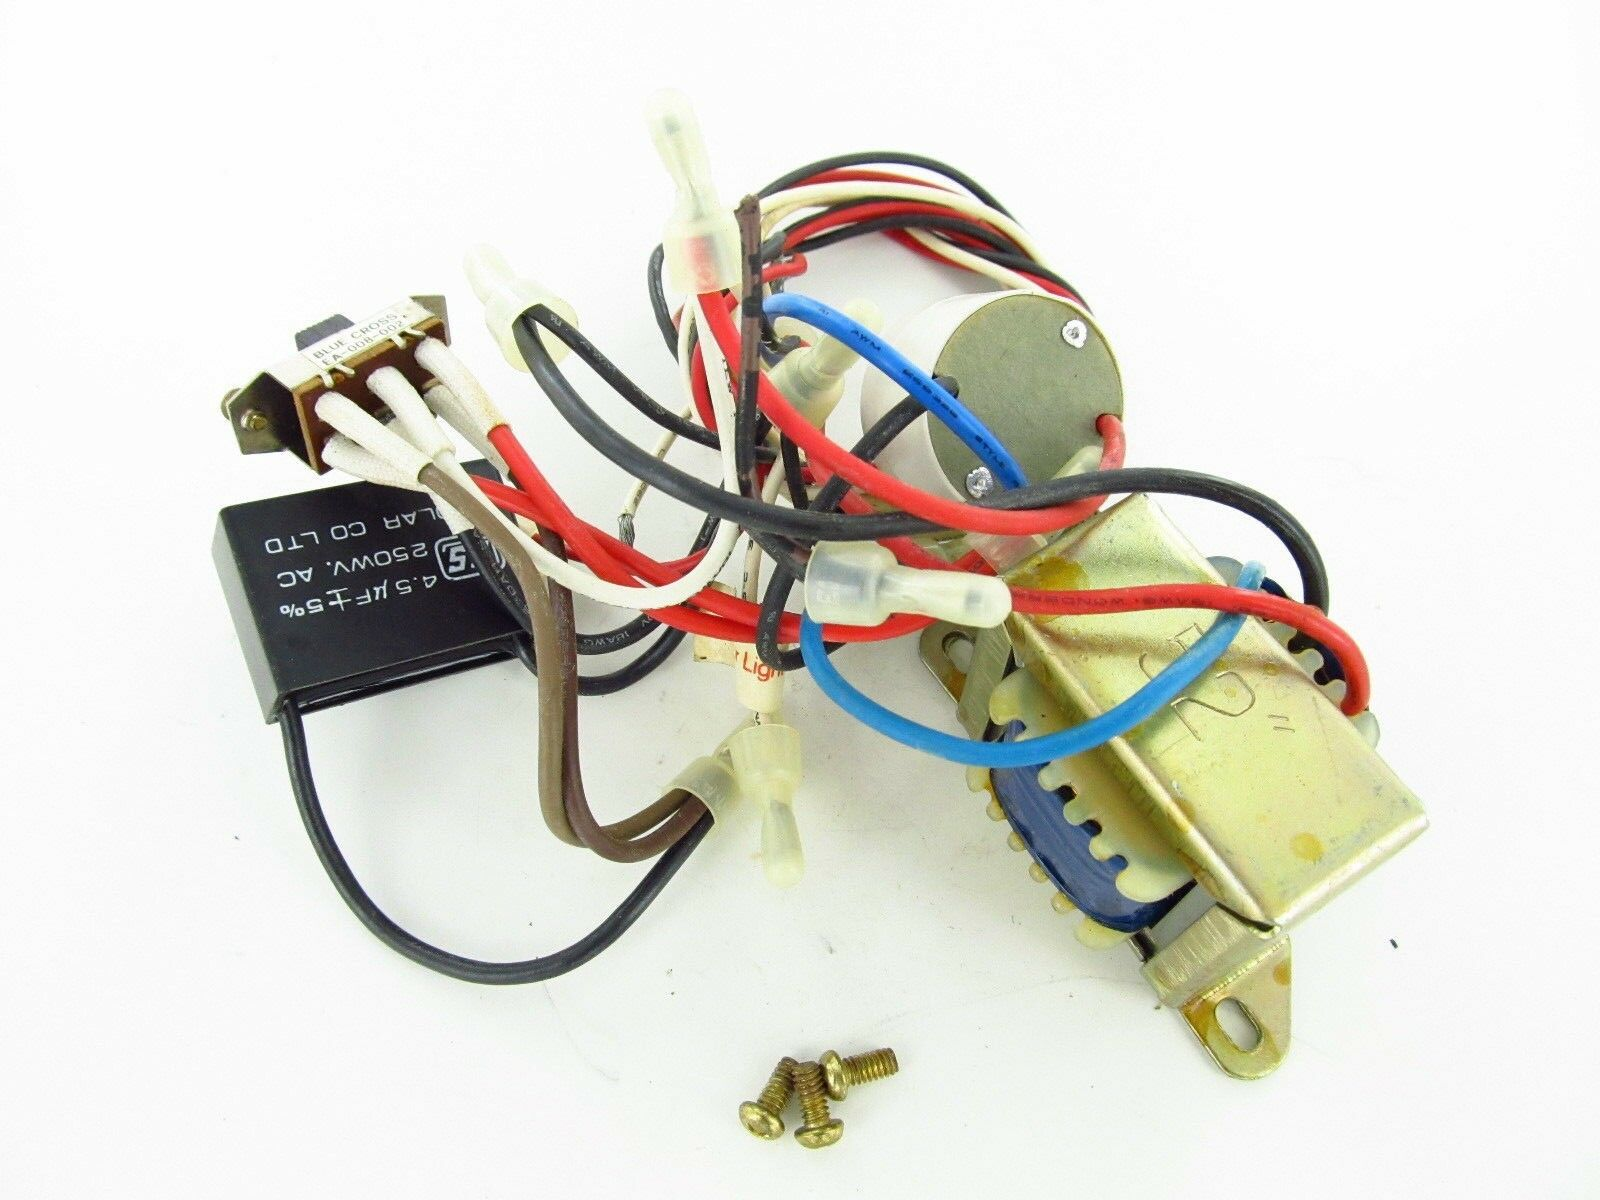 #5 - Used Nutone Ceiling Fan Wiring Harness with Switchs/Capacitor/Parts 1  of 5Only 2 available See More